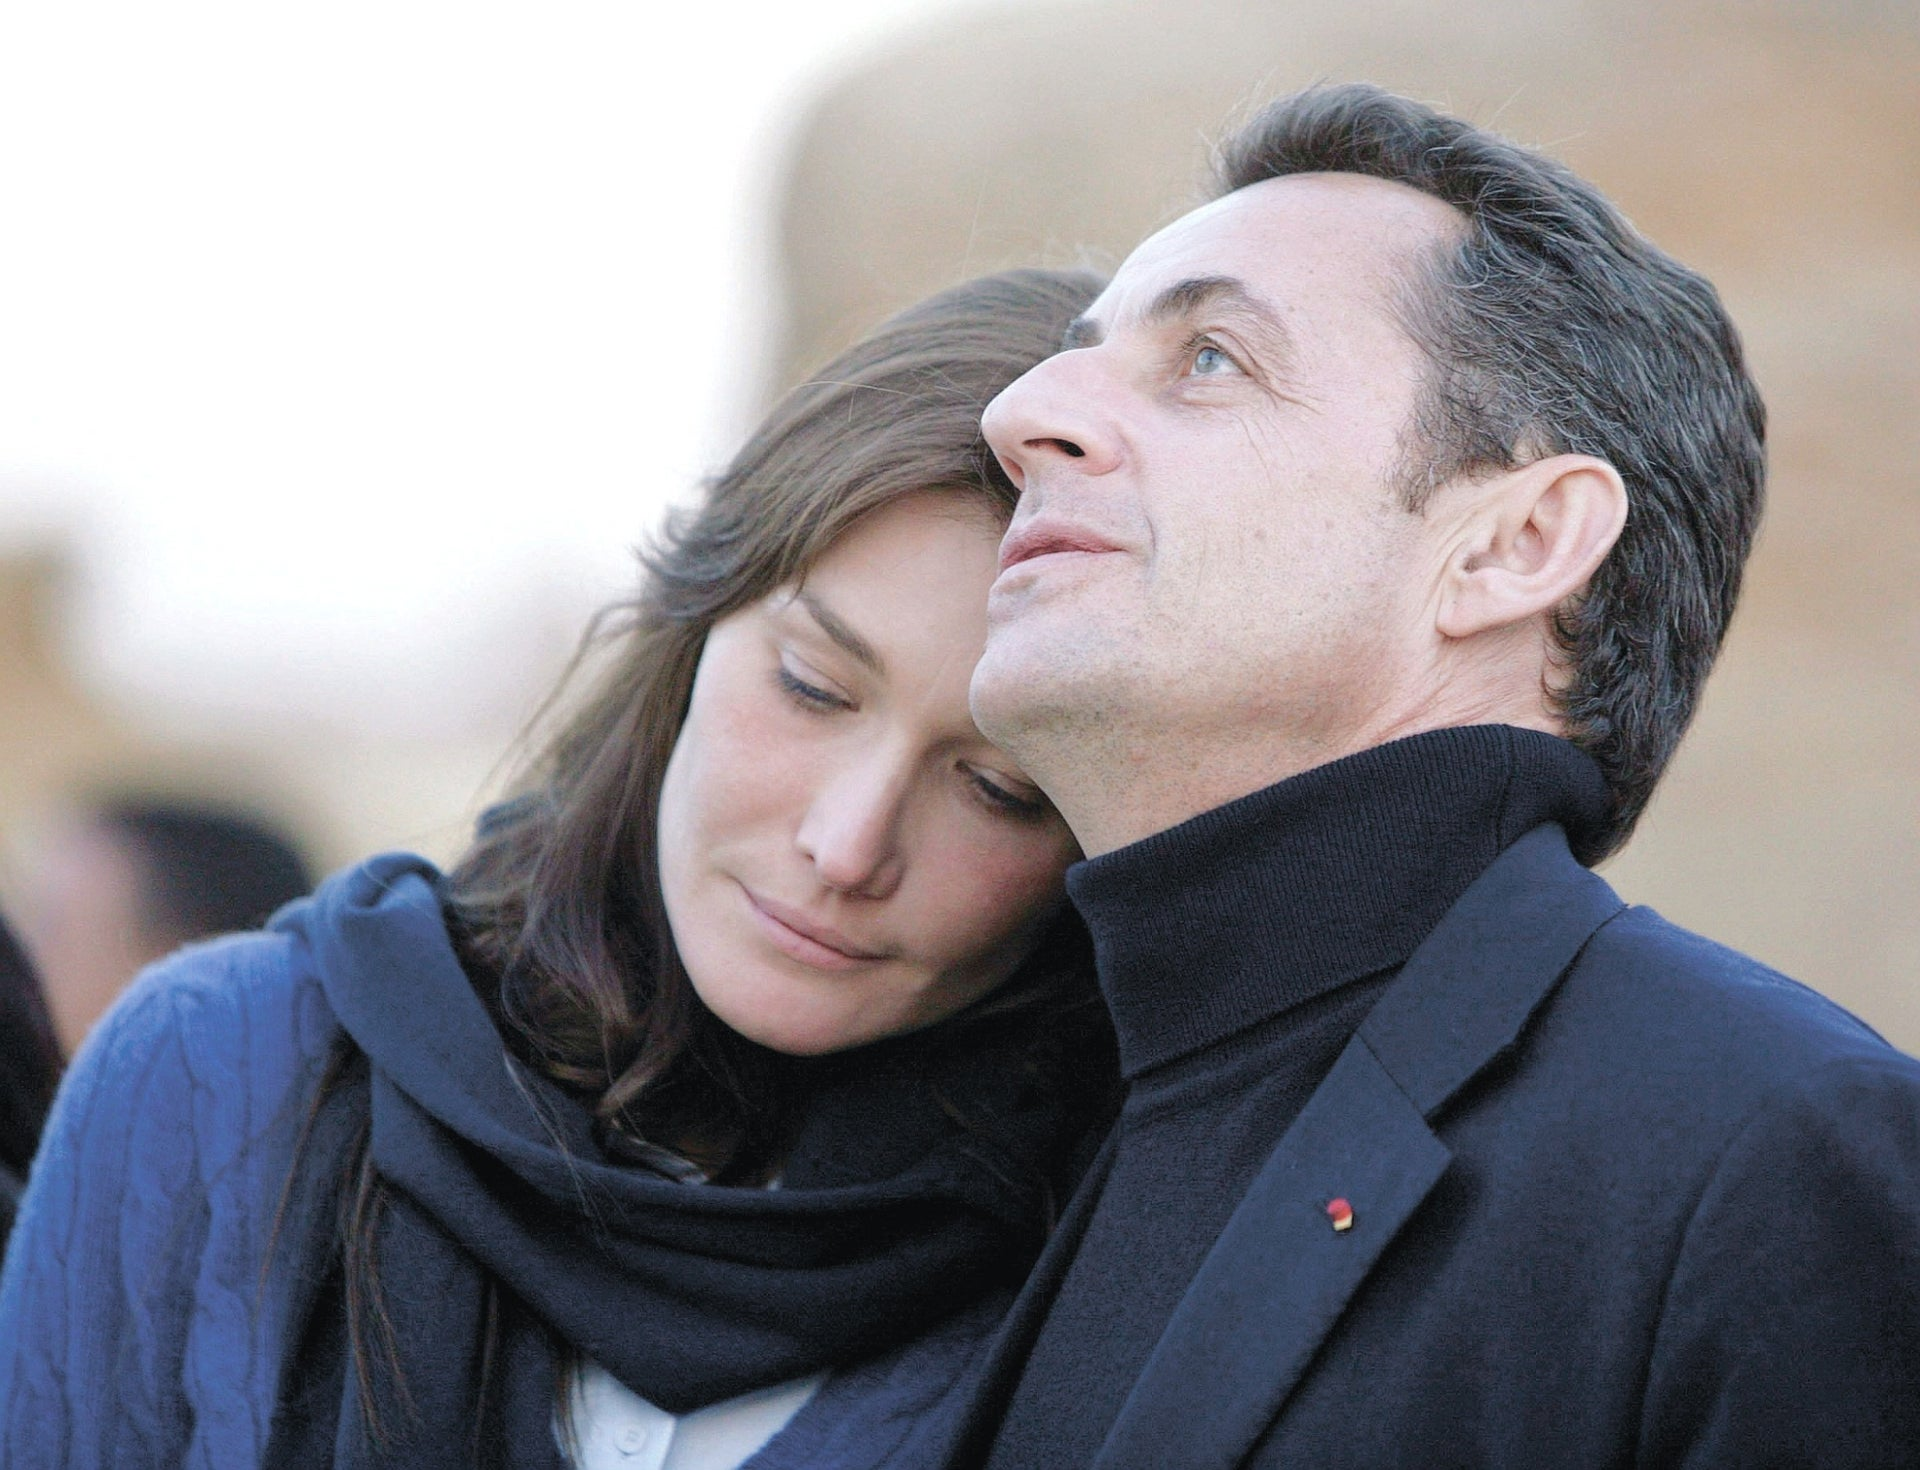 Nicolas Sarkozy (R) with former supermodel Carla Bruni before they were married during a visit to the Giza pyramids in Cairo, December 30, 2007.